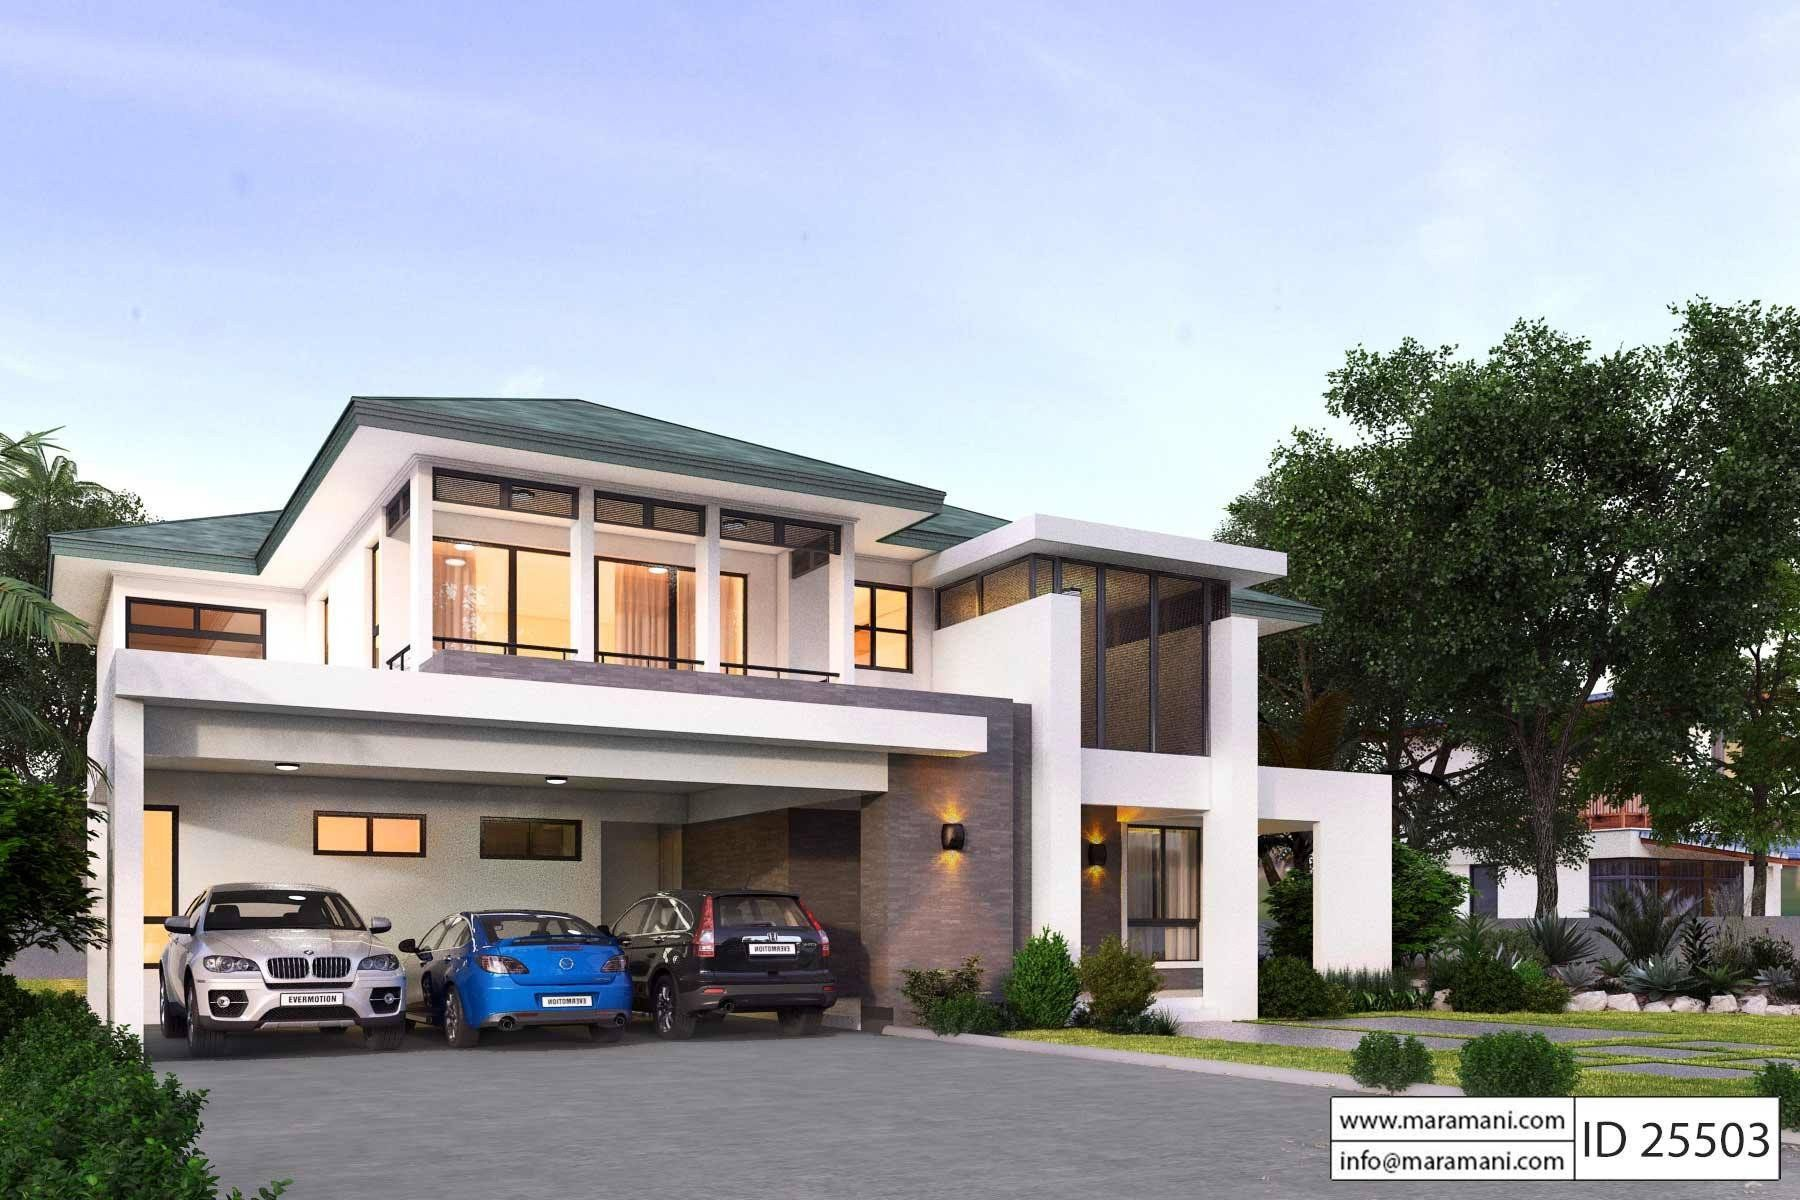 5 Bedroom Plan Id 25503 Modern House Plans 5 Bedroom House Plans Architectural House Plans